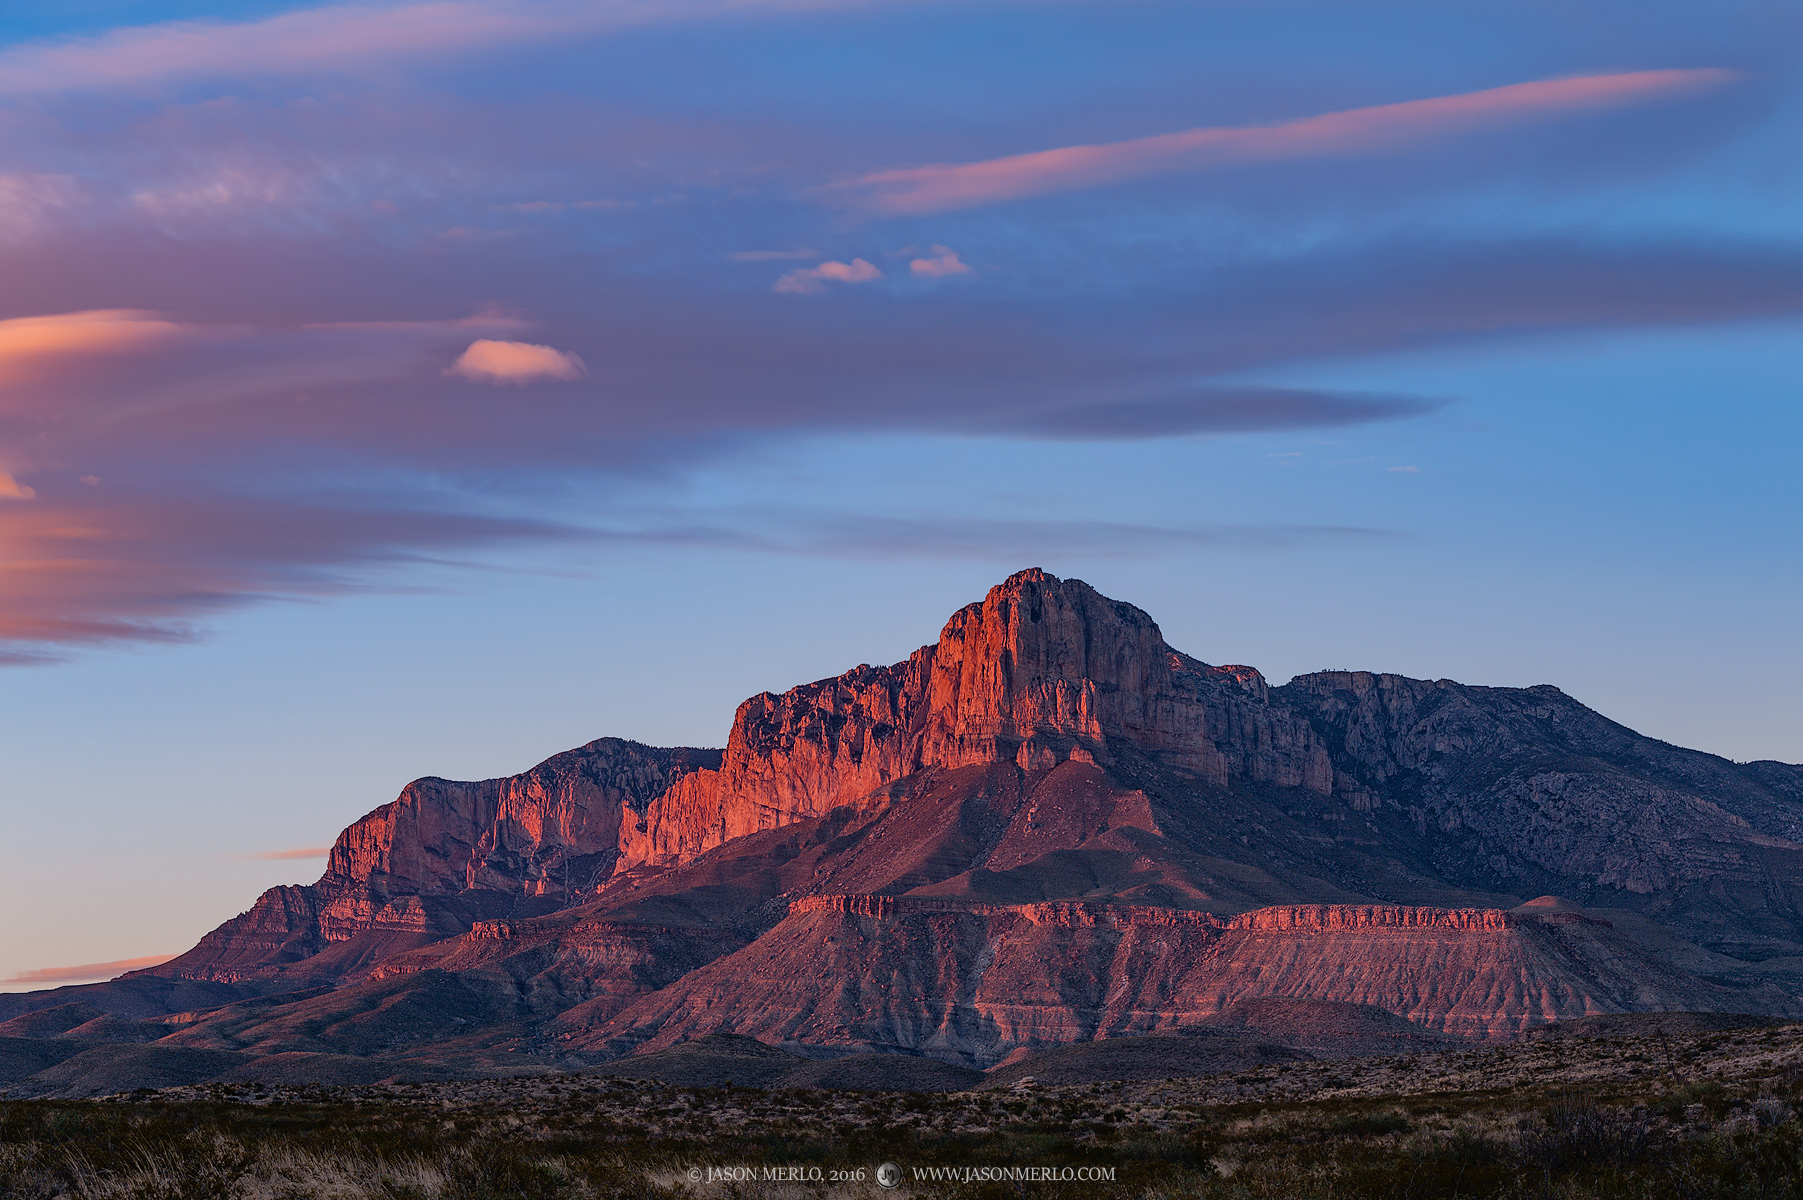 Guadalupe Mountains National Park, West Texas, Culberson County, sunset, El Capitán, Guadalupe Peak, Shumard Peak, Bartlett Peak, Bush Mountain, Hunter Peak, photo